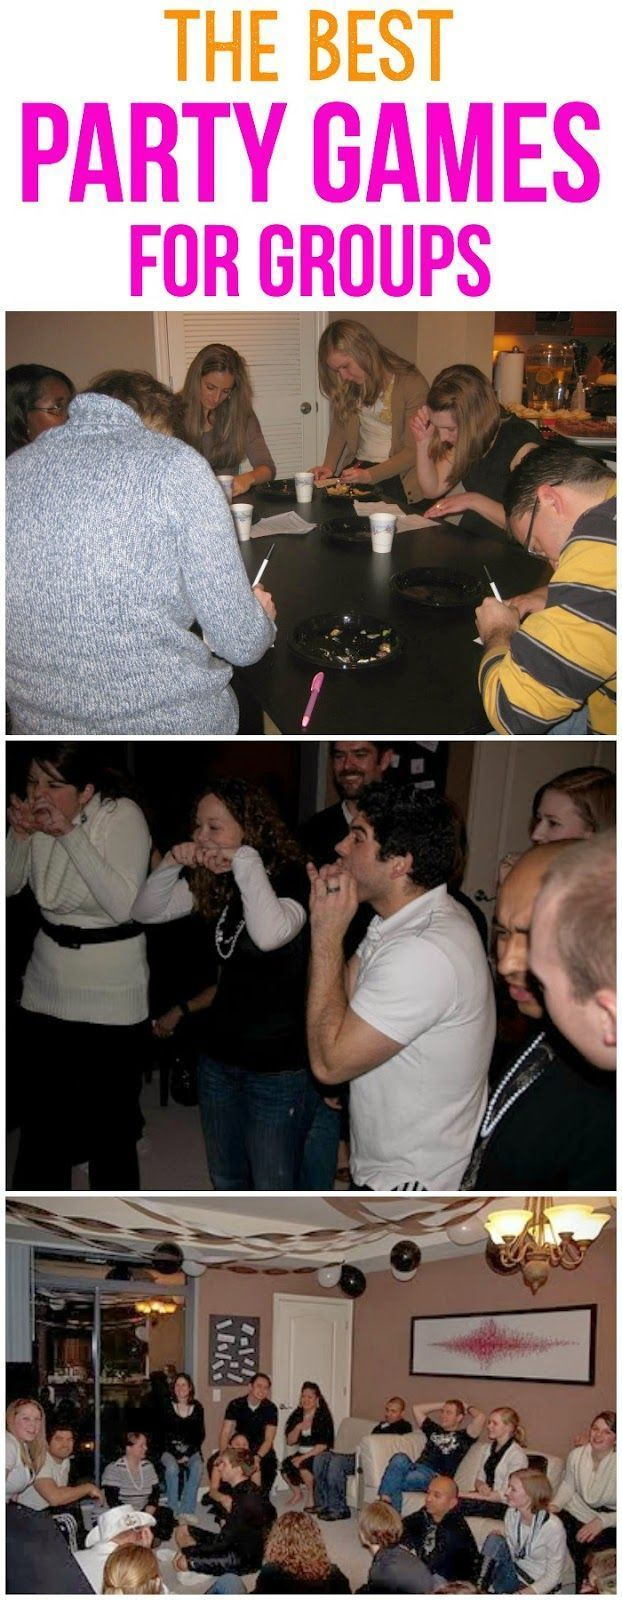 Five awesome party games that are perfect for adults, for teens, or for a large group! Perfect for having fun for a birthday party or Christmas without alcohol! Seriously the most hilarious party games ever! Definitely some of the best ones out there.